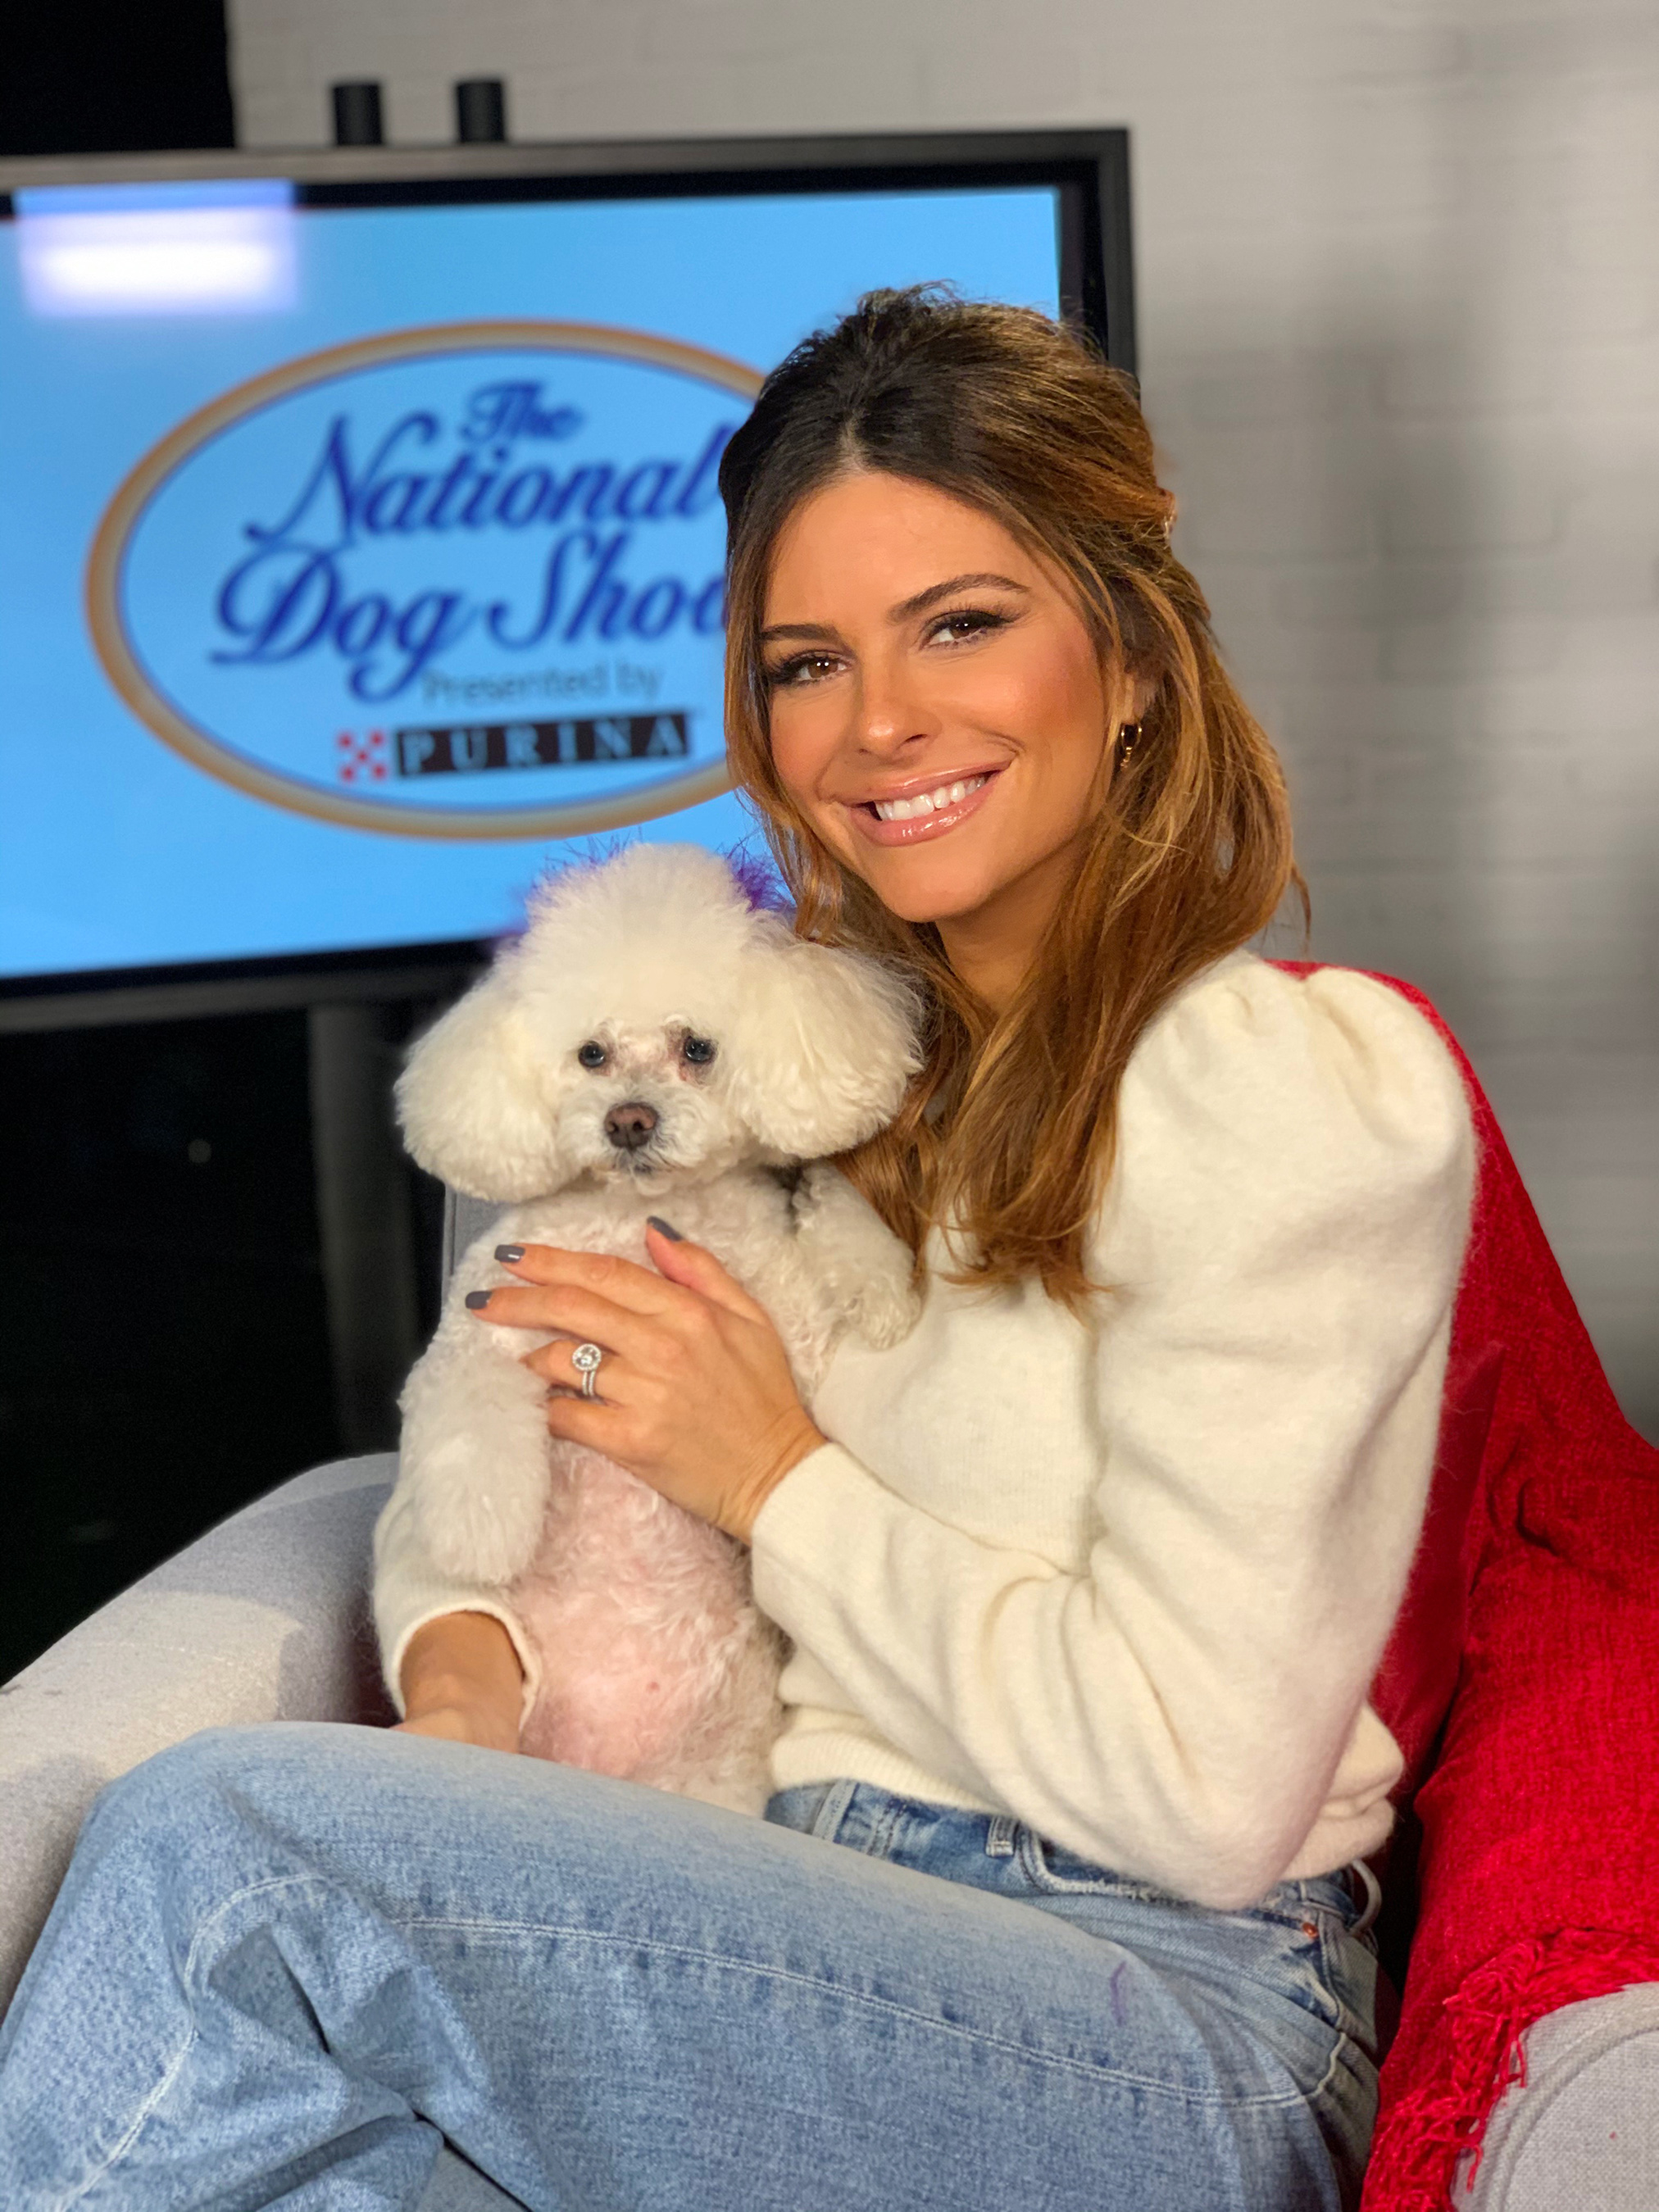 """Whinnie and I love #DogThanking because it highlights the countless roles our pets play in making our lives better,"" said Emmy award-winning journalist and pet enthusiast Maria Menounos."